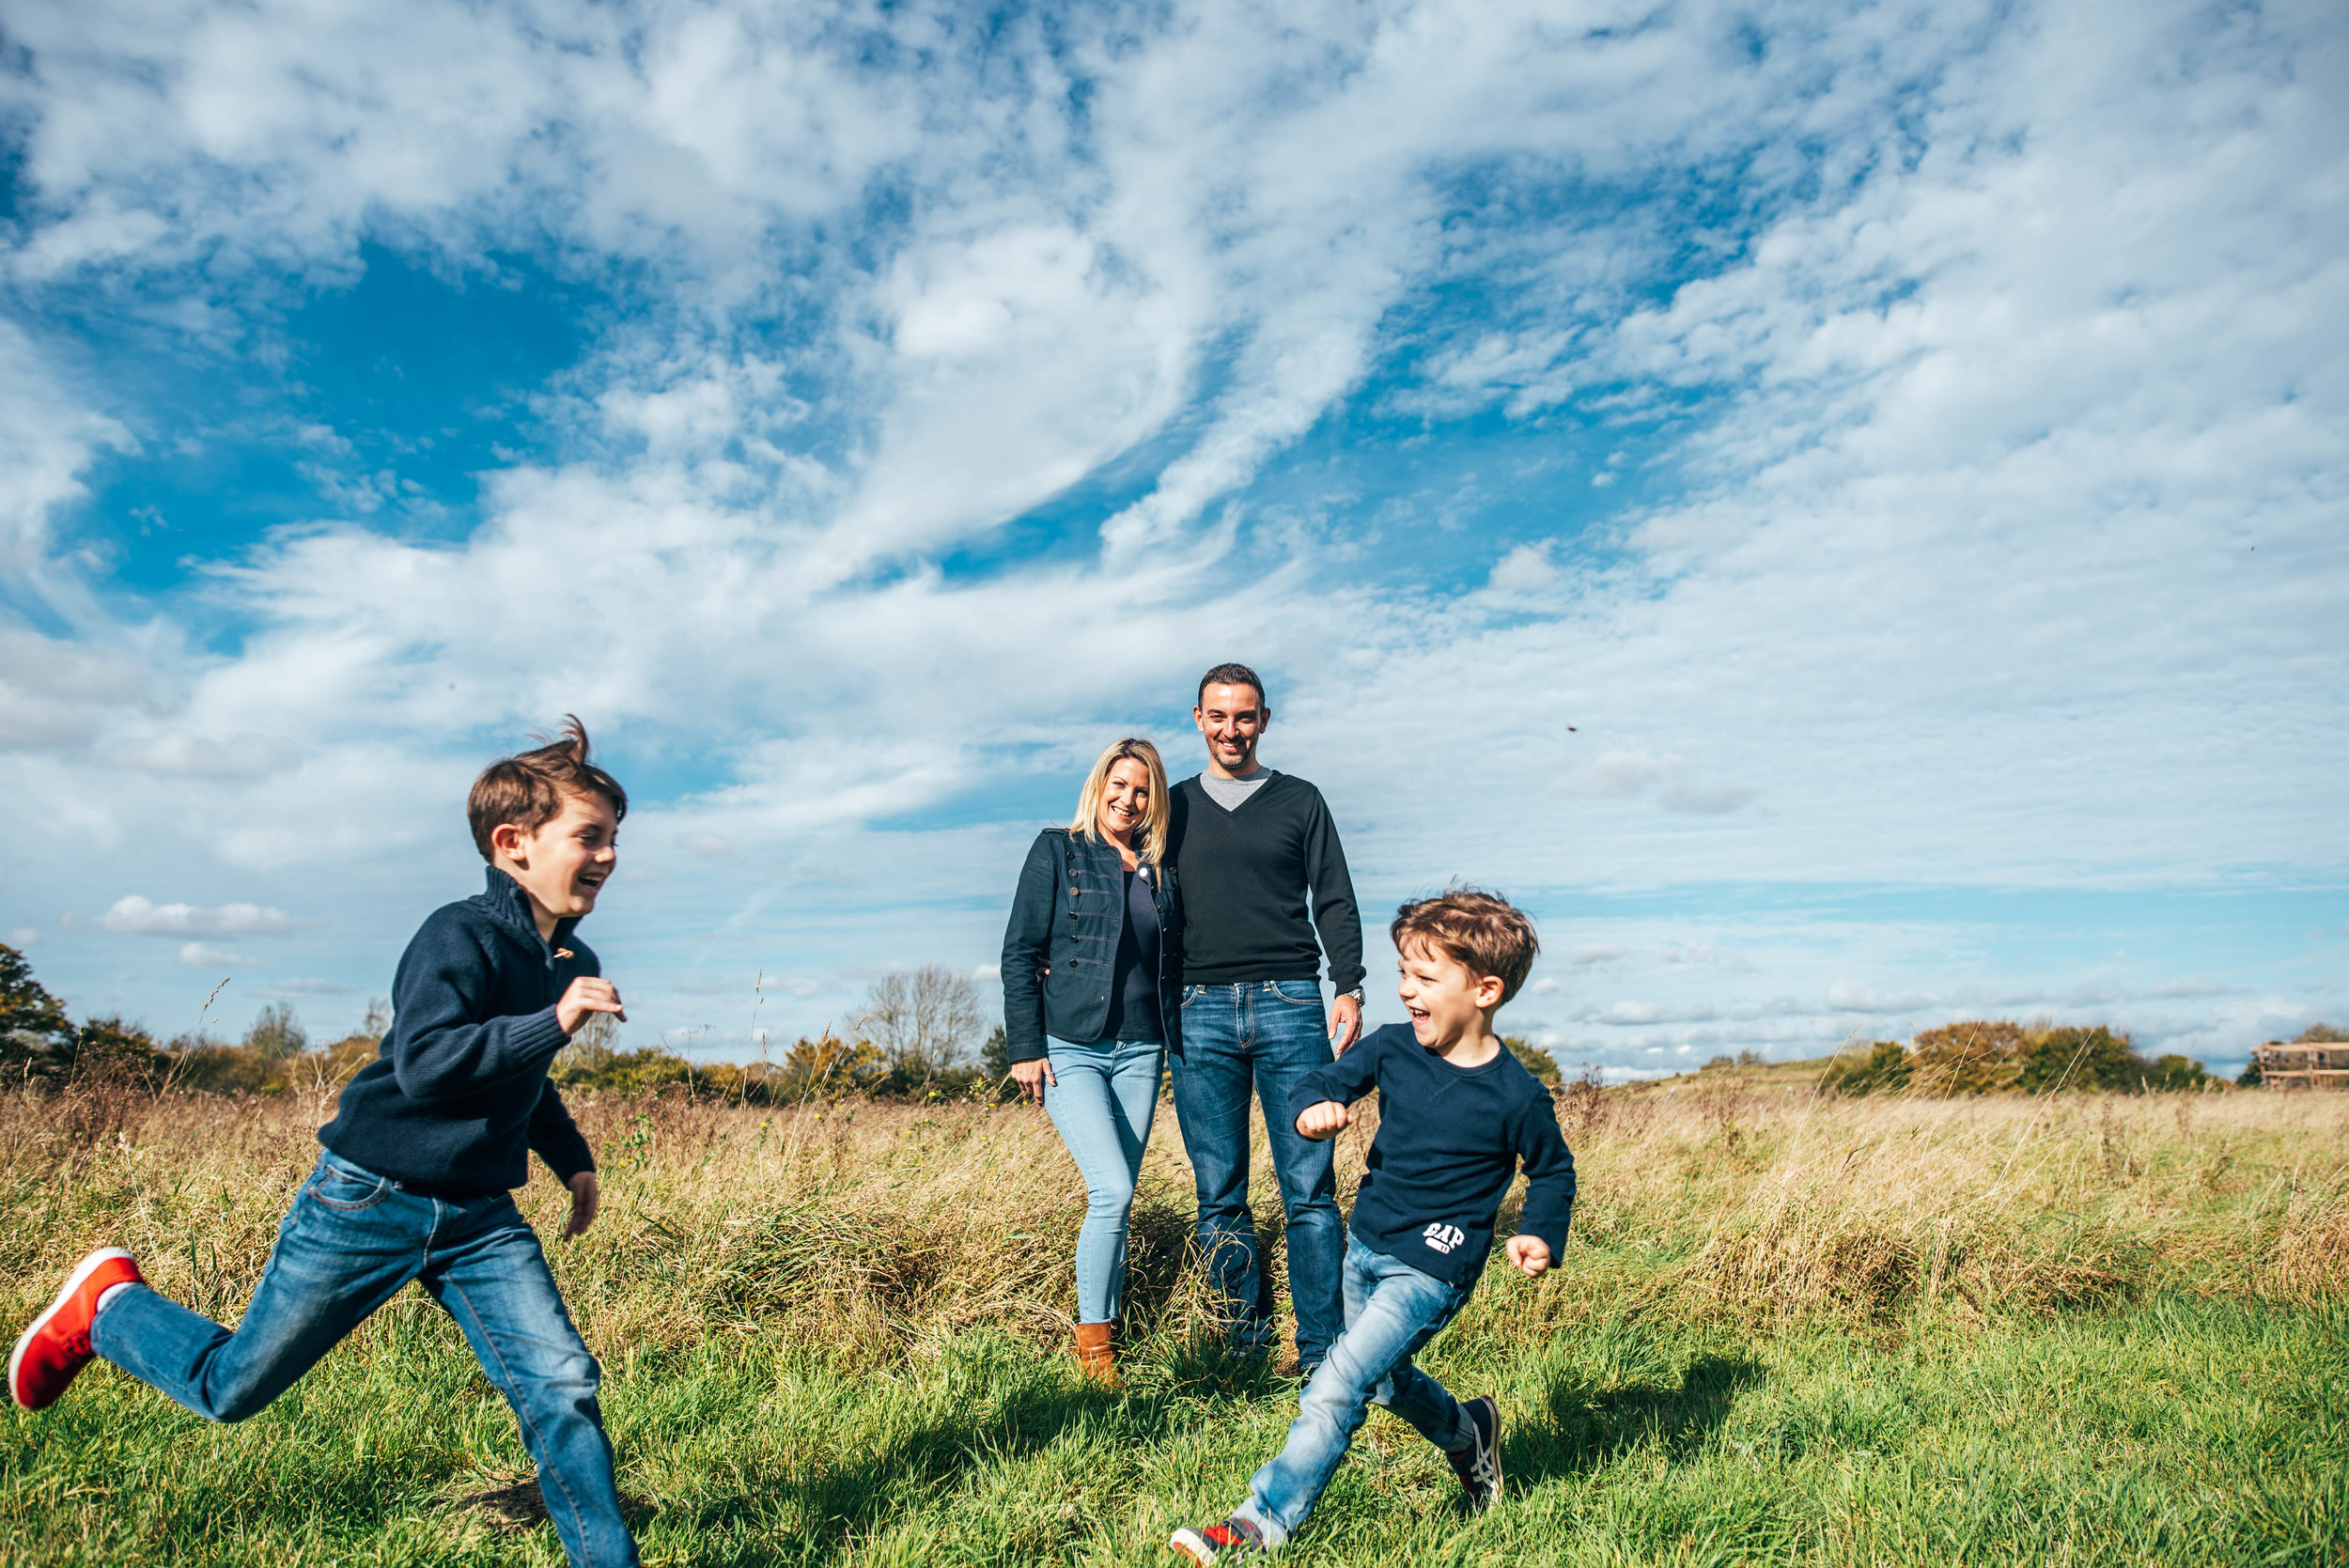 Young boys run in field Essex Documentary Portrait Photographer